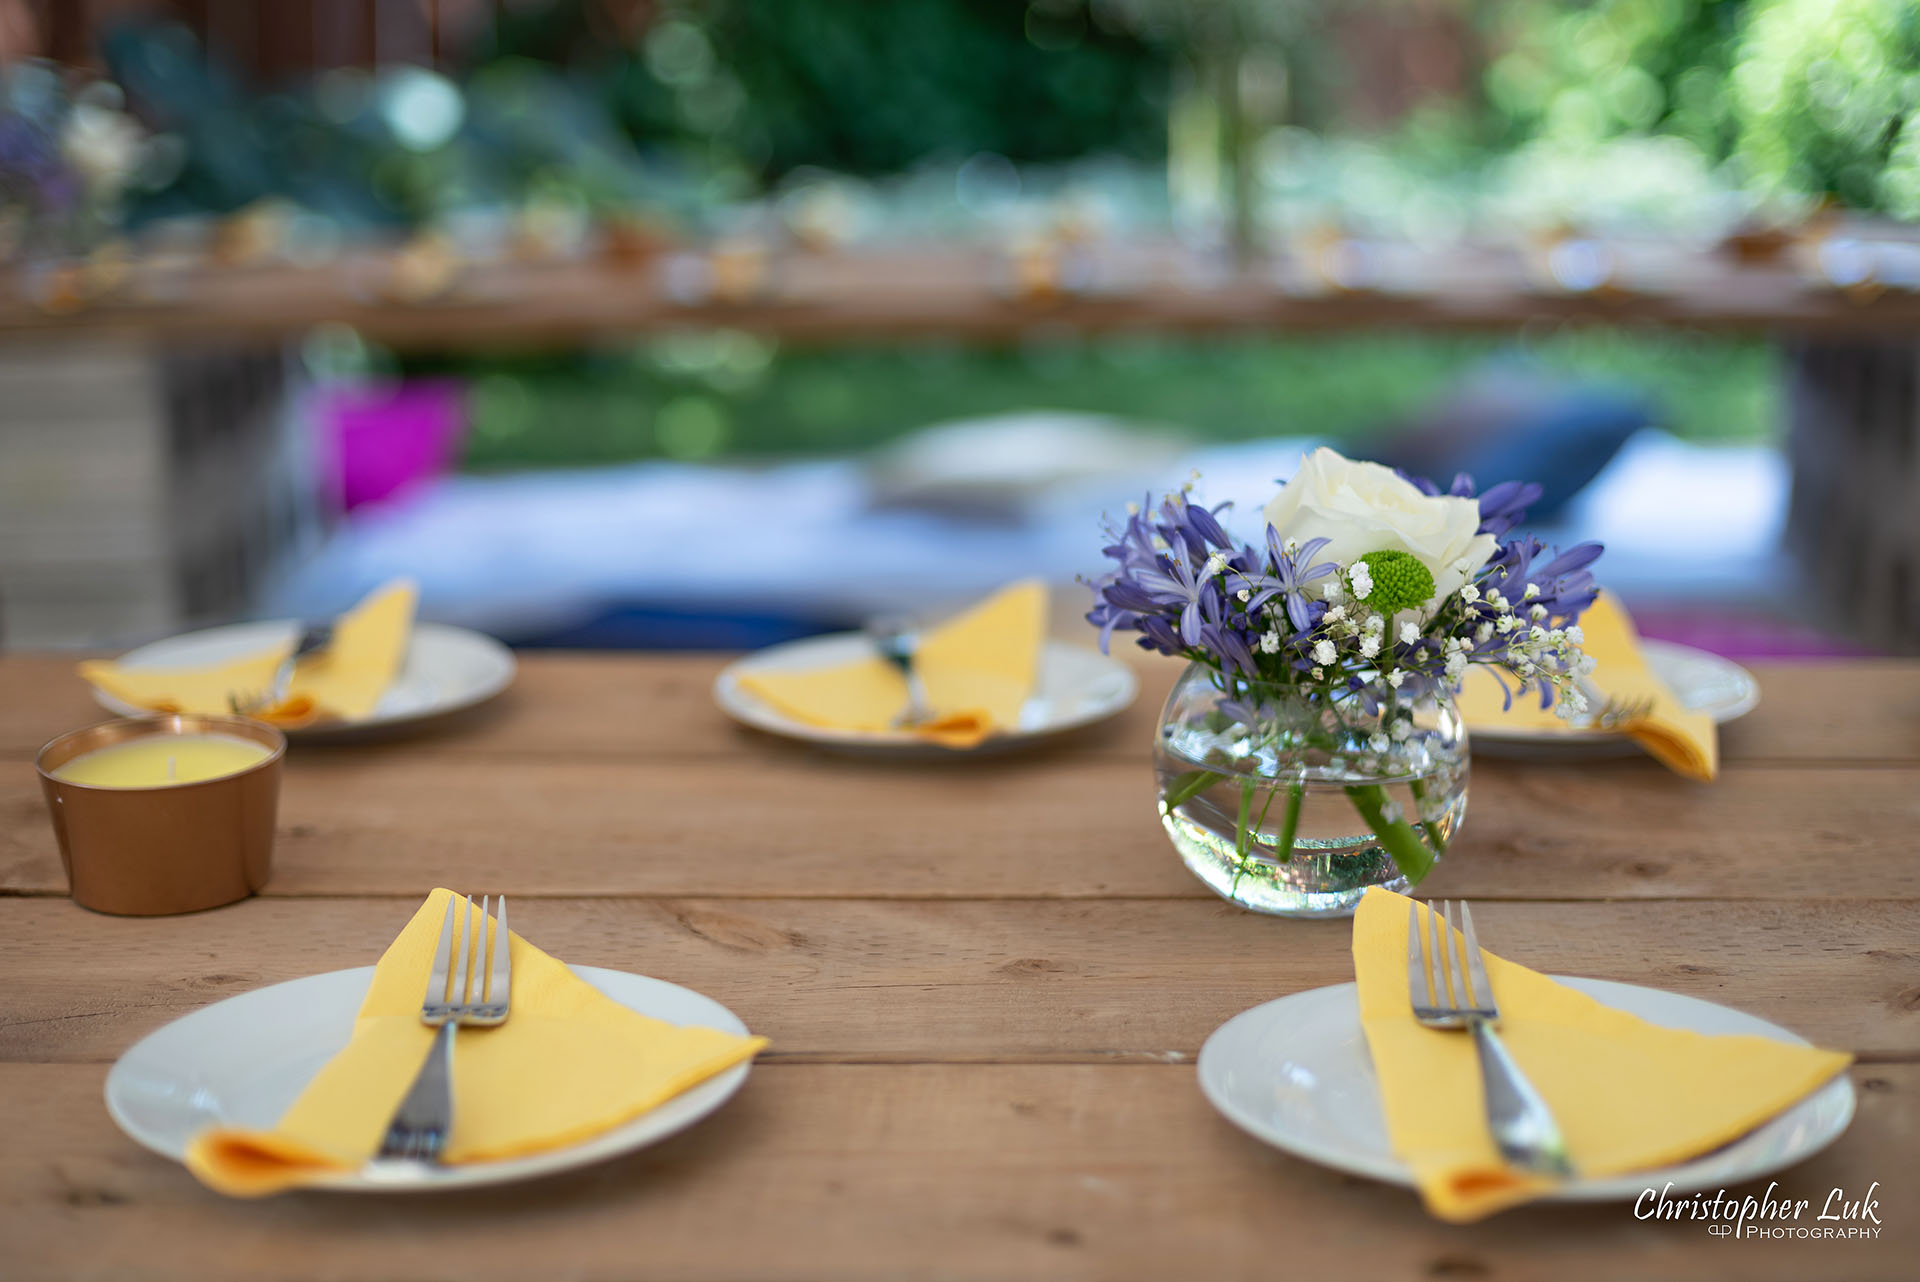 Christopher Luk Toronto Wedding Engagement Event Photographer Bohemian Boho Chic Backyard Tent Wedding Wood Table Planks Folded Napkins Plates Floral Centrepieces Detail